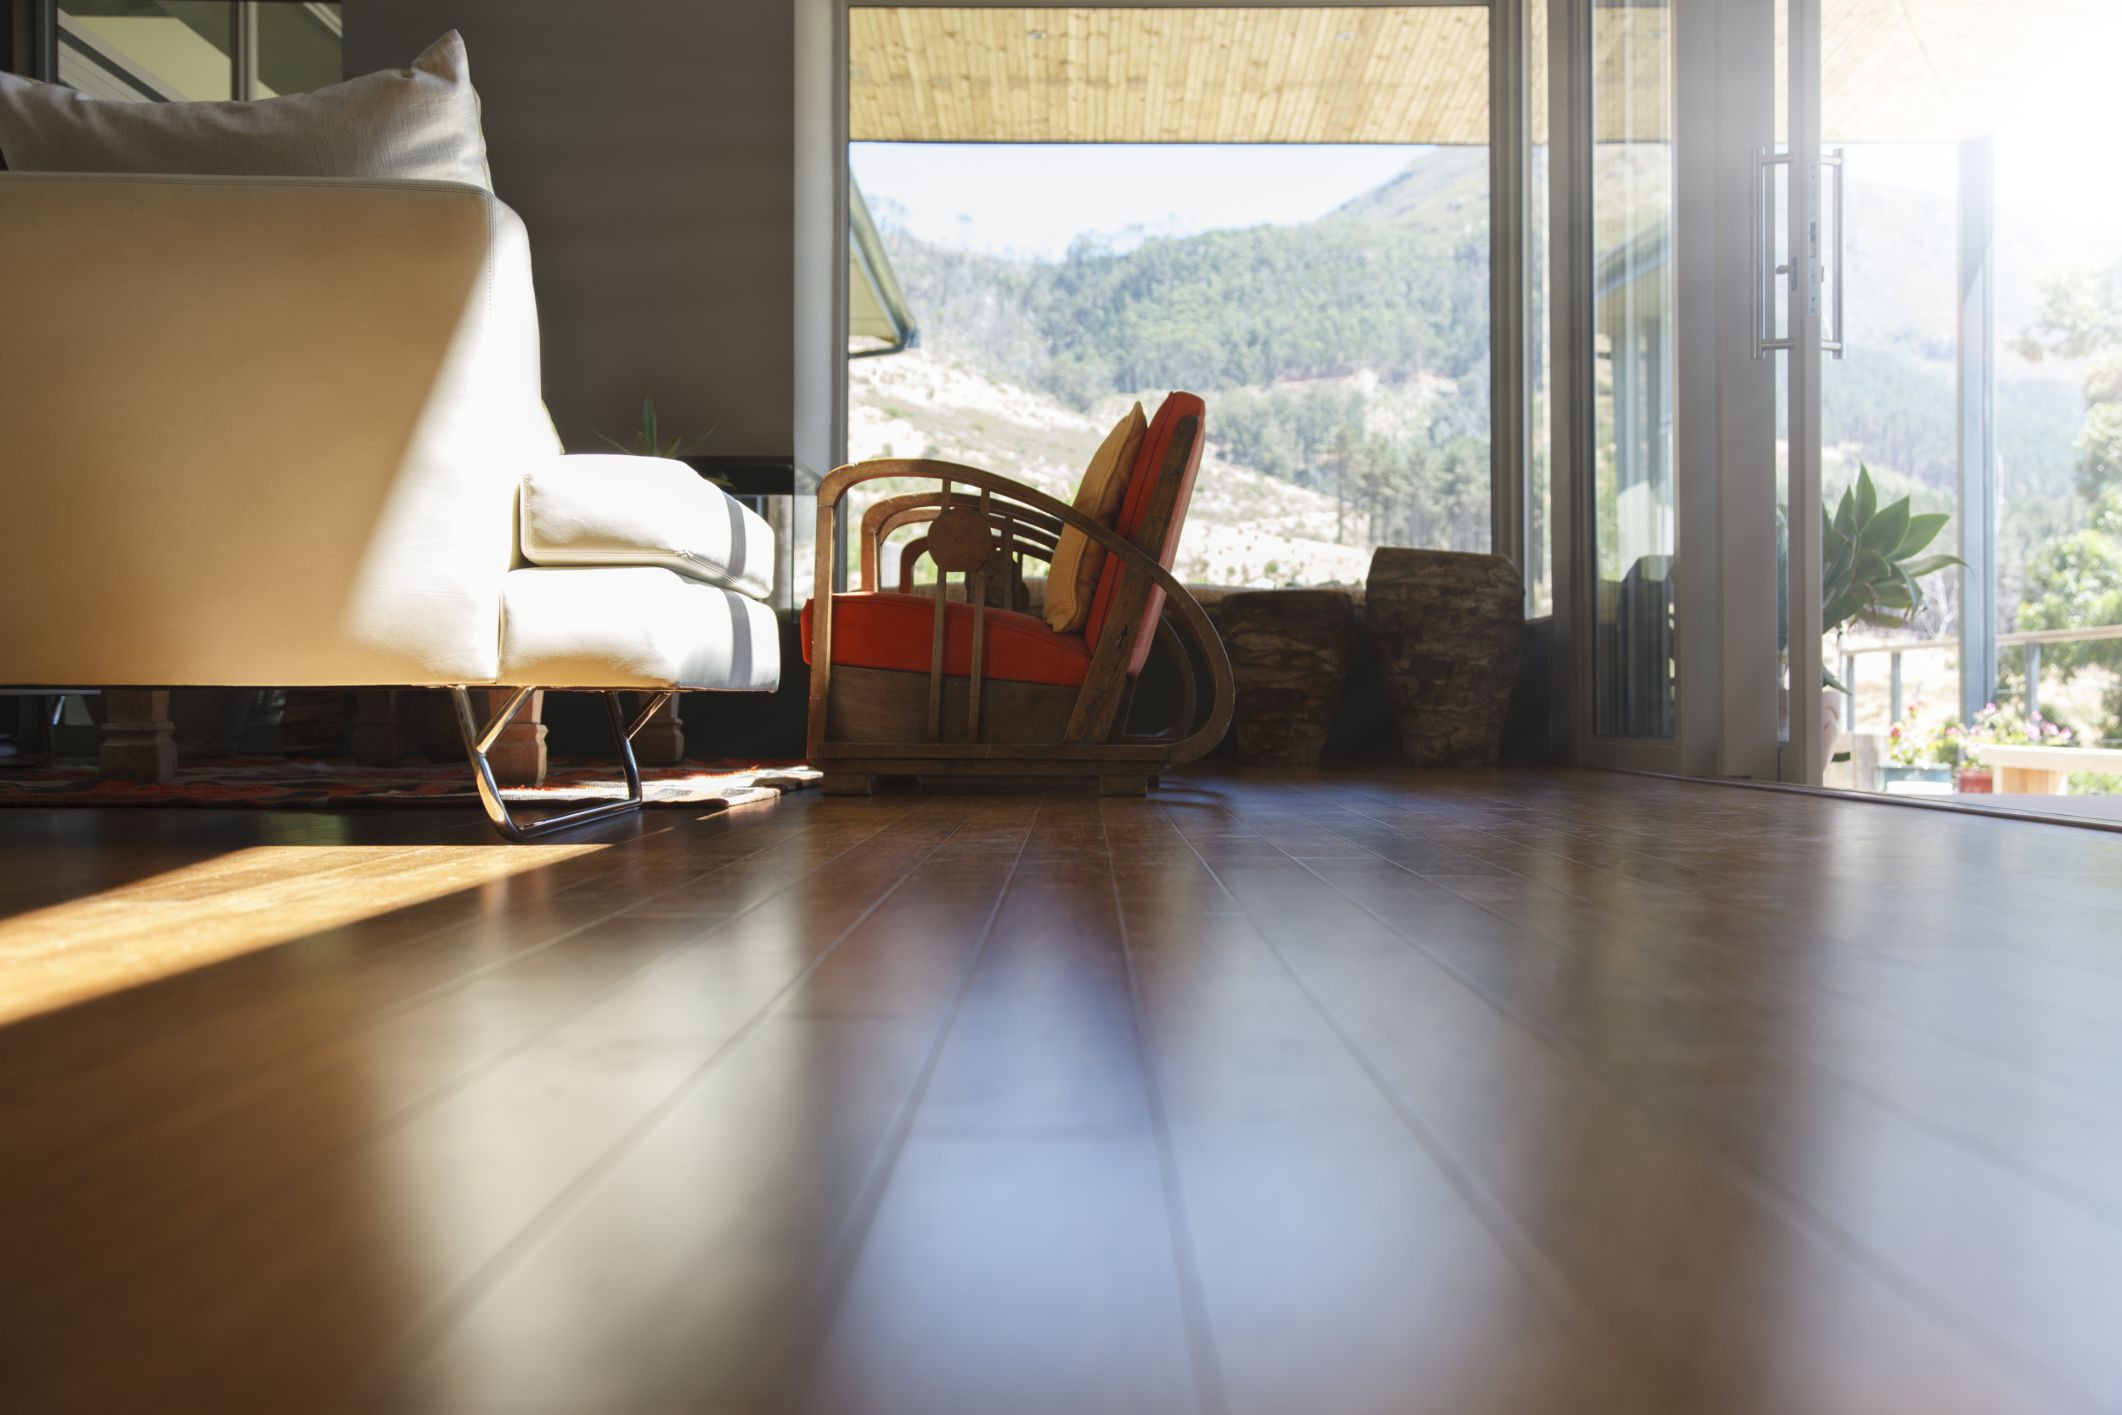 prefinished hardwood flooring installation cost per square foot of pros and cons of bellawood flooring from lumber liquidators with exotic hardwood flooring 525439899 56a49d3a3df78cf77283453d